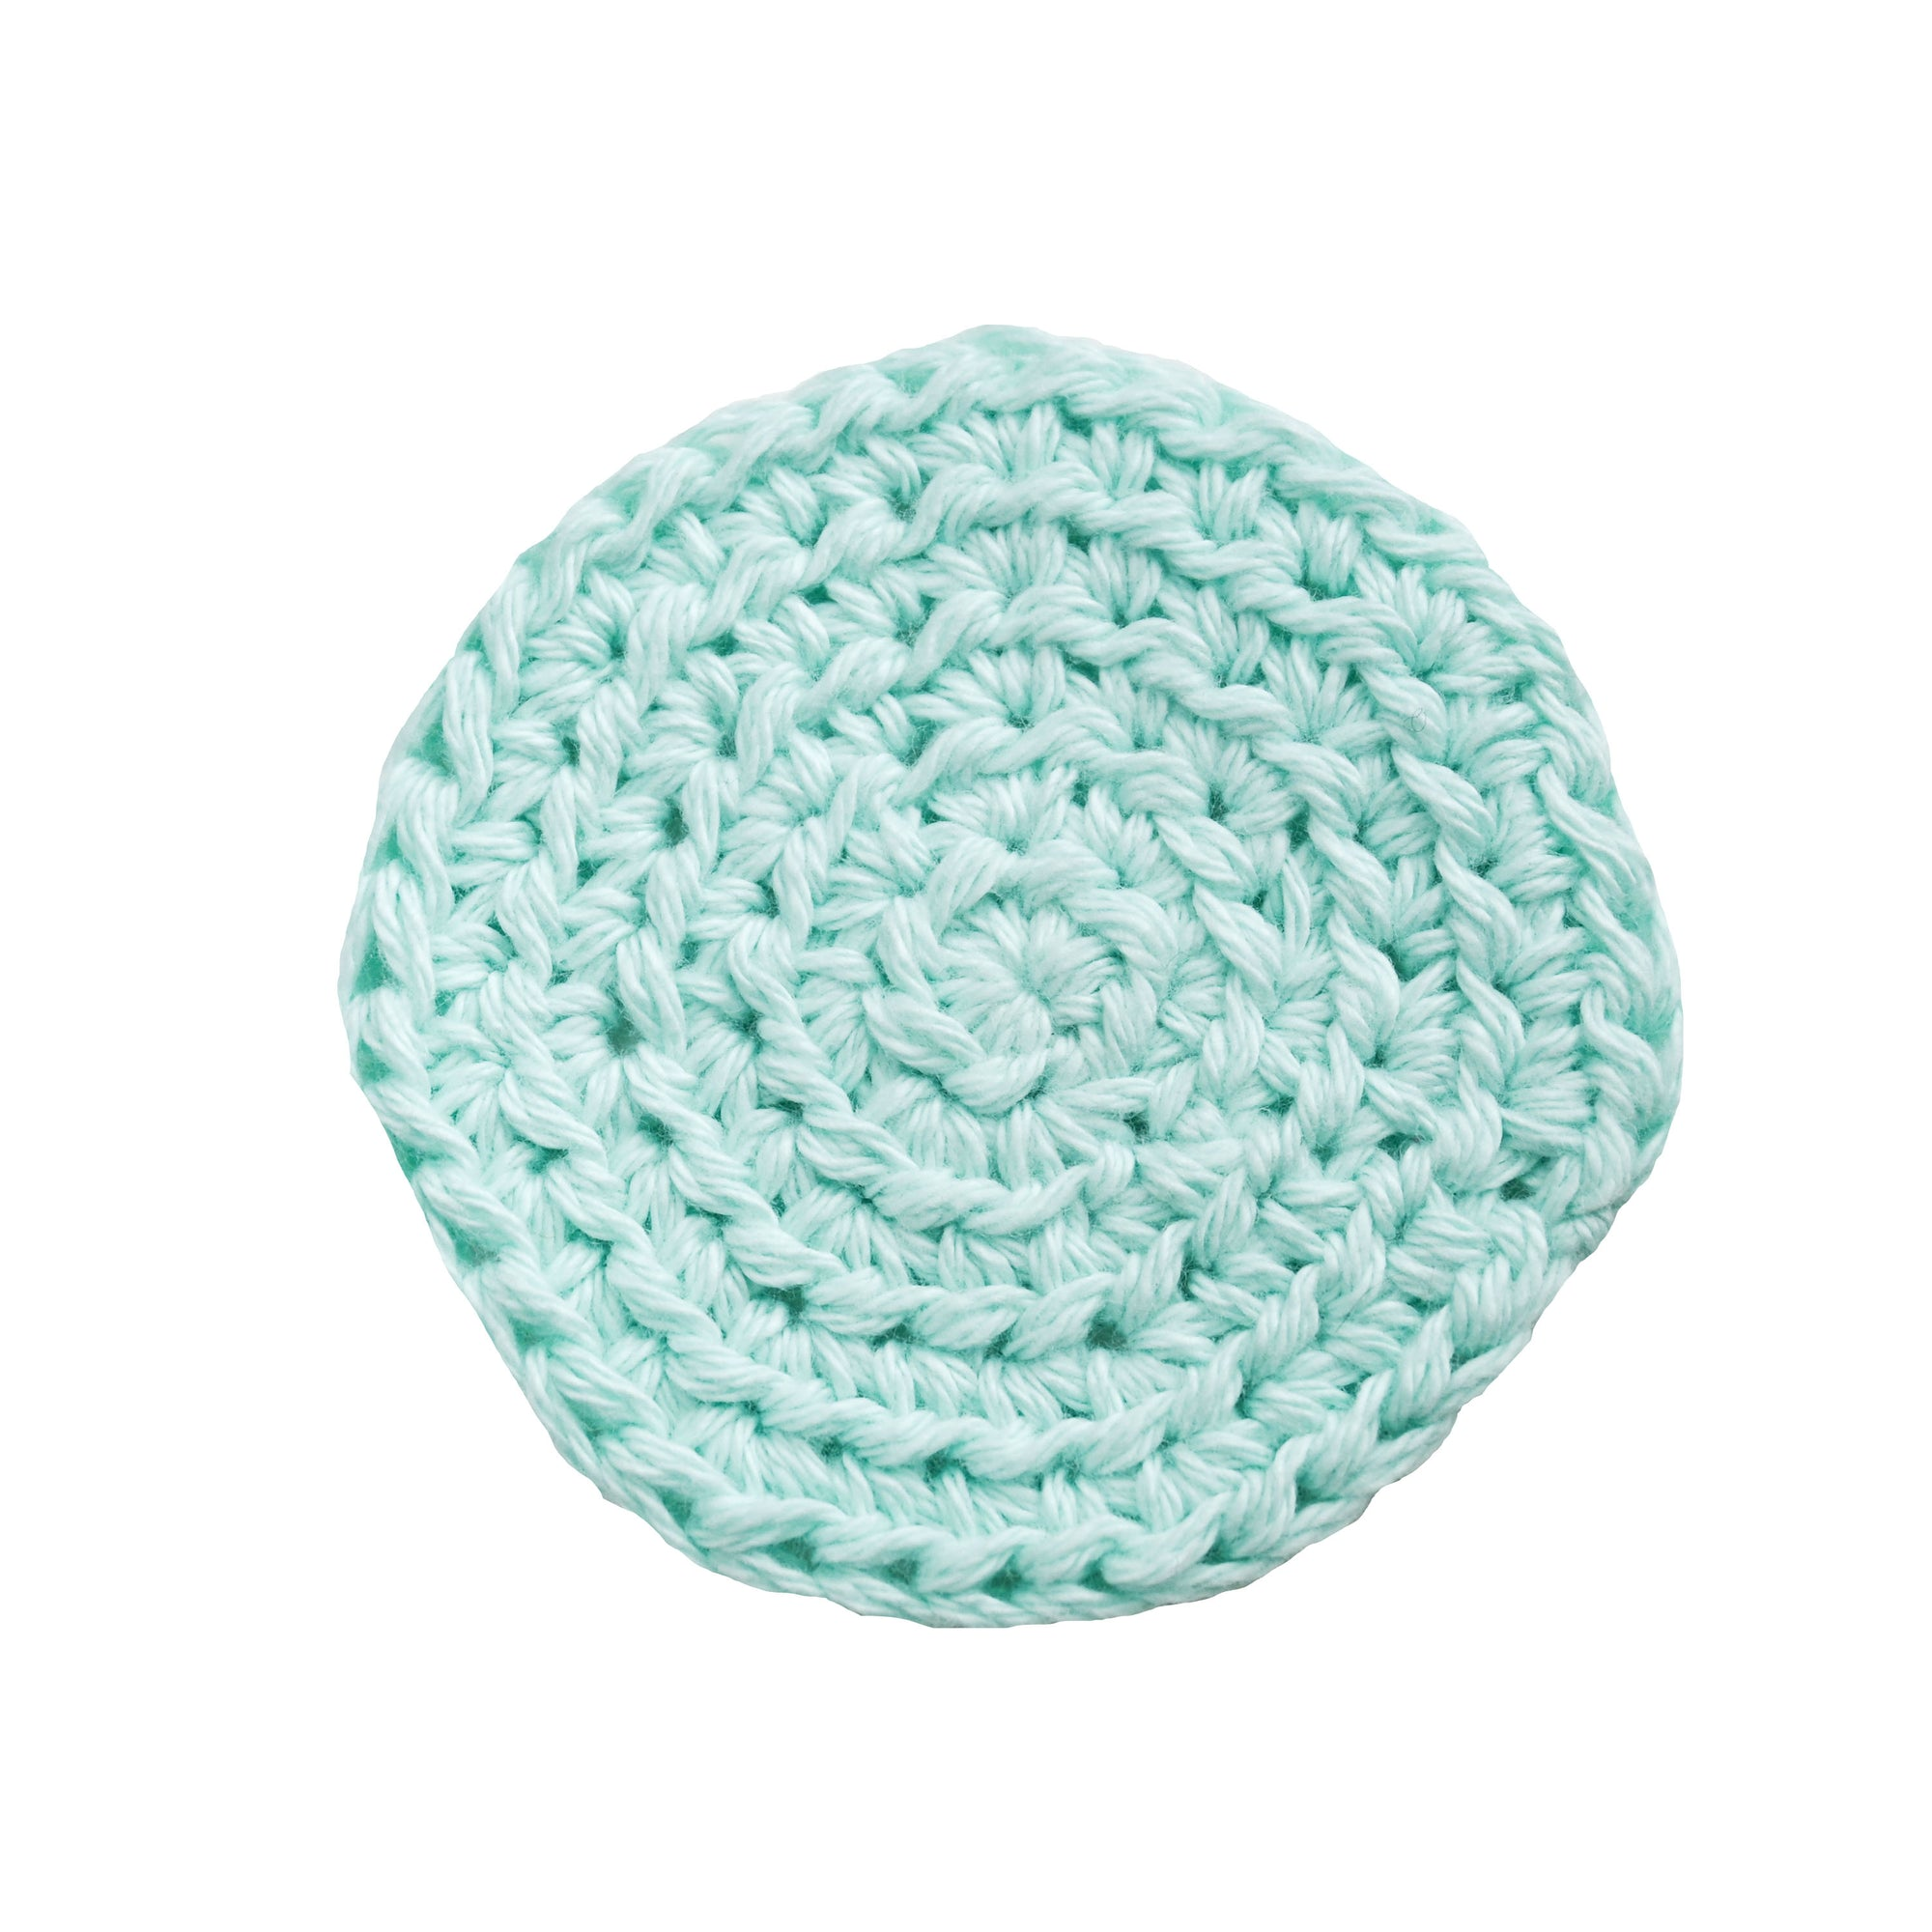 Mint Reusable Makeup Pads - Carys The World Bamboo Bottle Brush